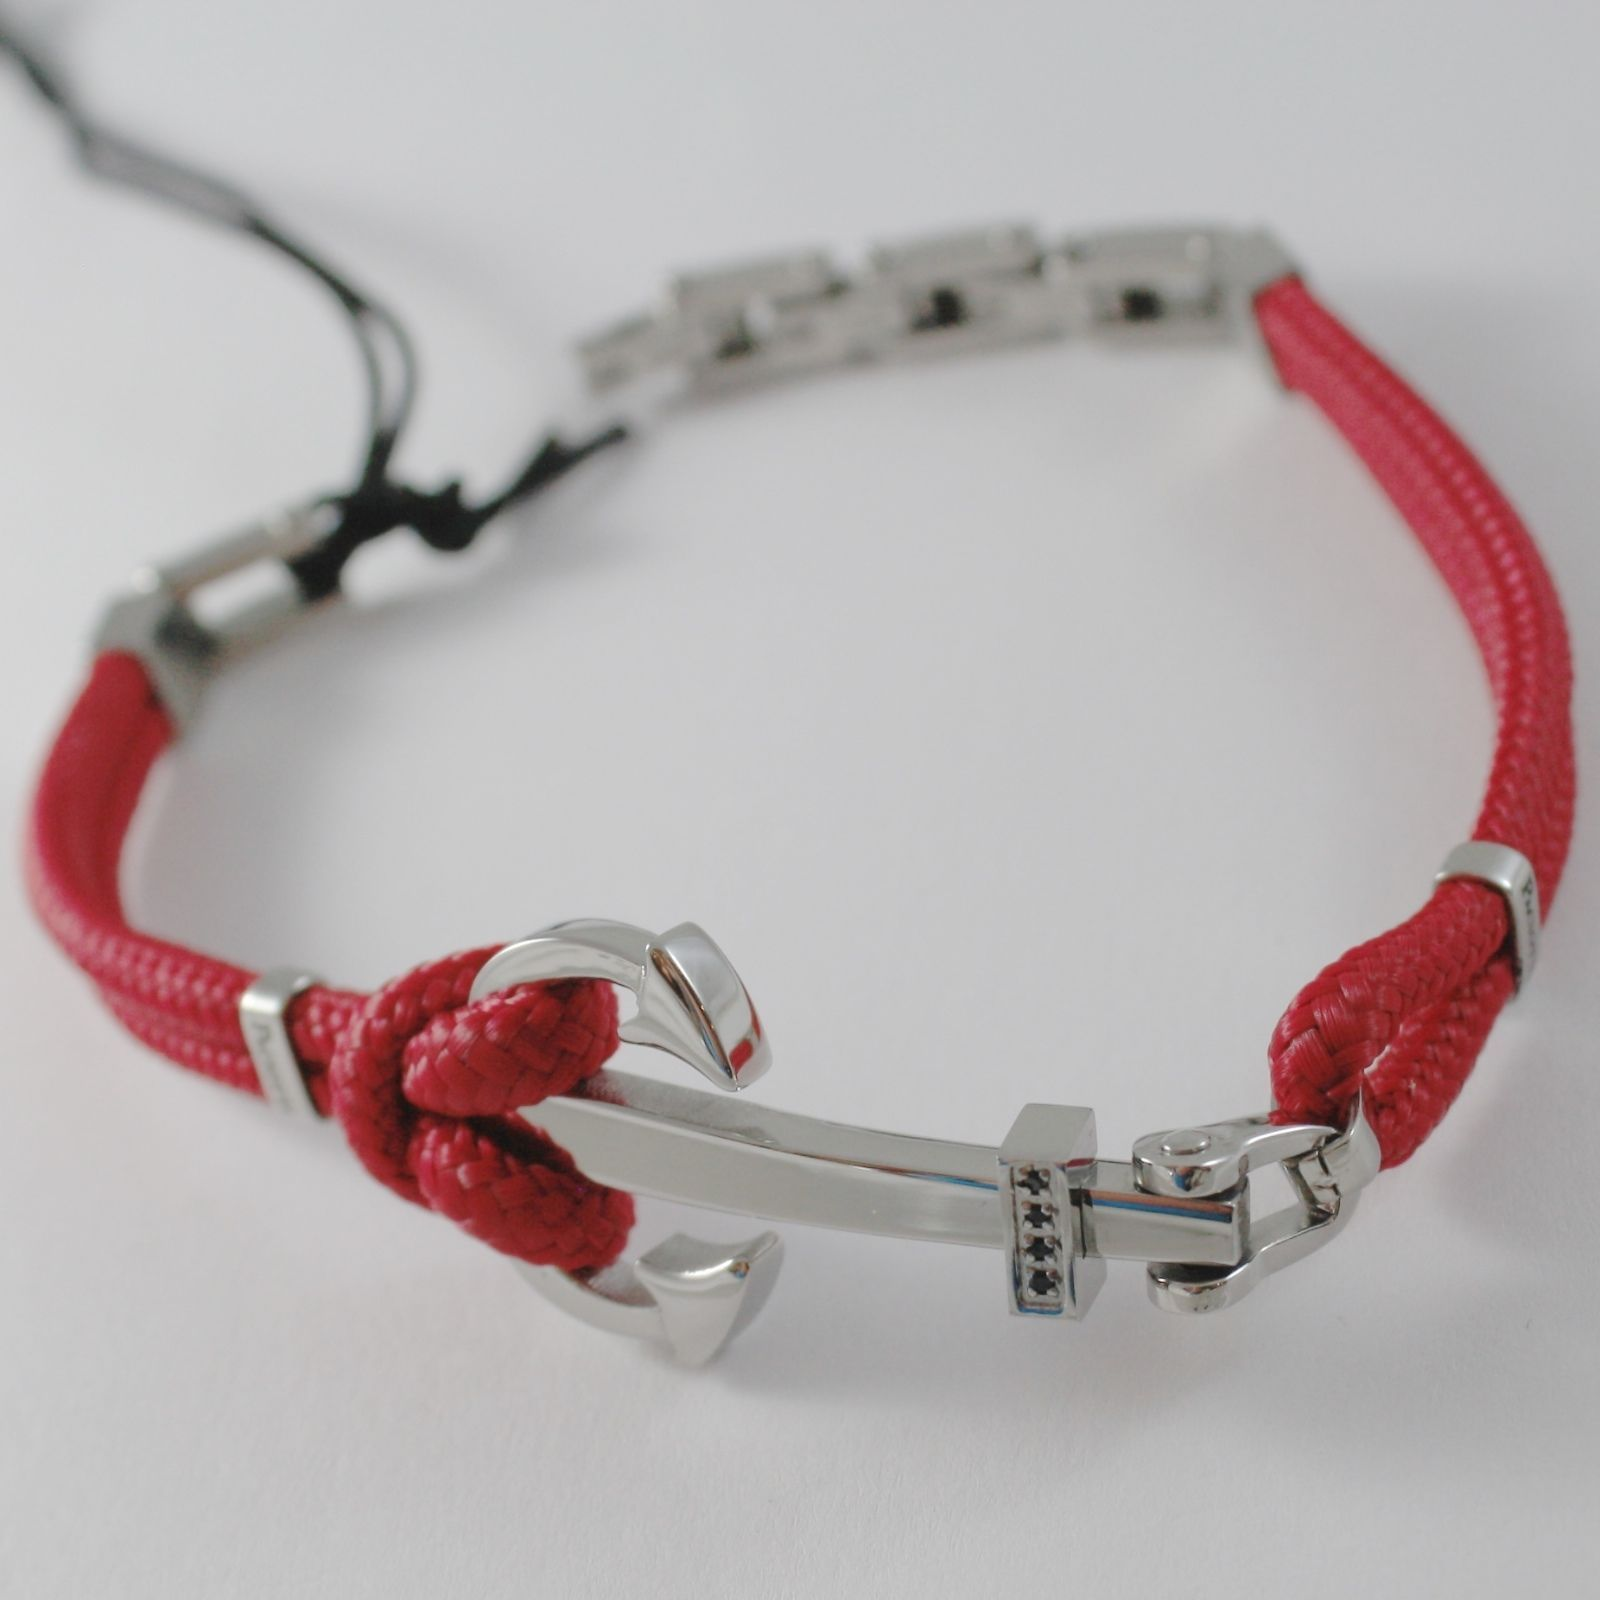 STAINLESS STEEL BIG ANCHOR BRACELET RED NAUTICAL ROPE, 4US BY CESARE PACIOTTI